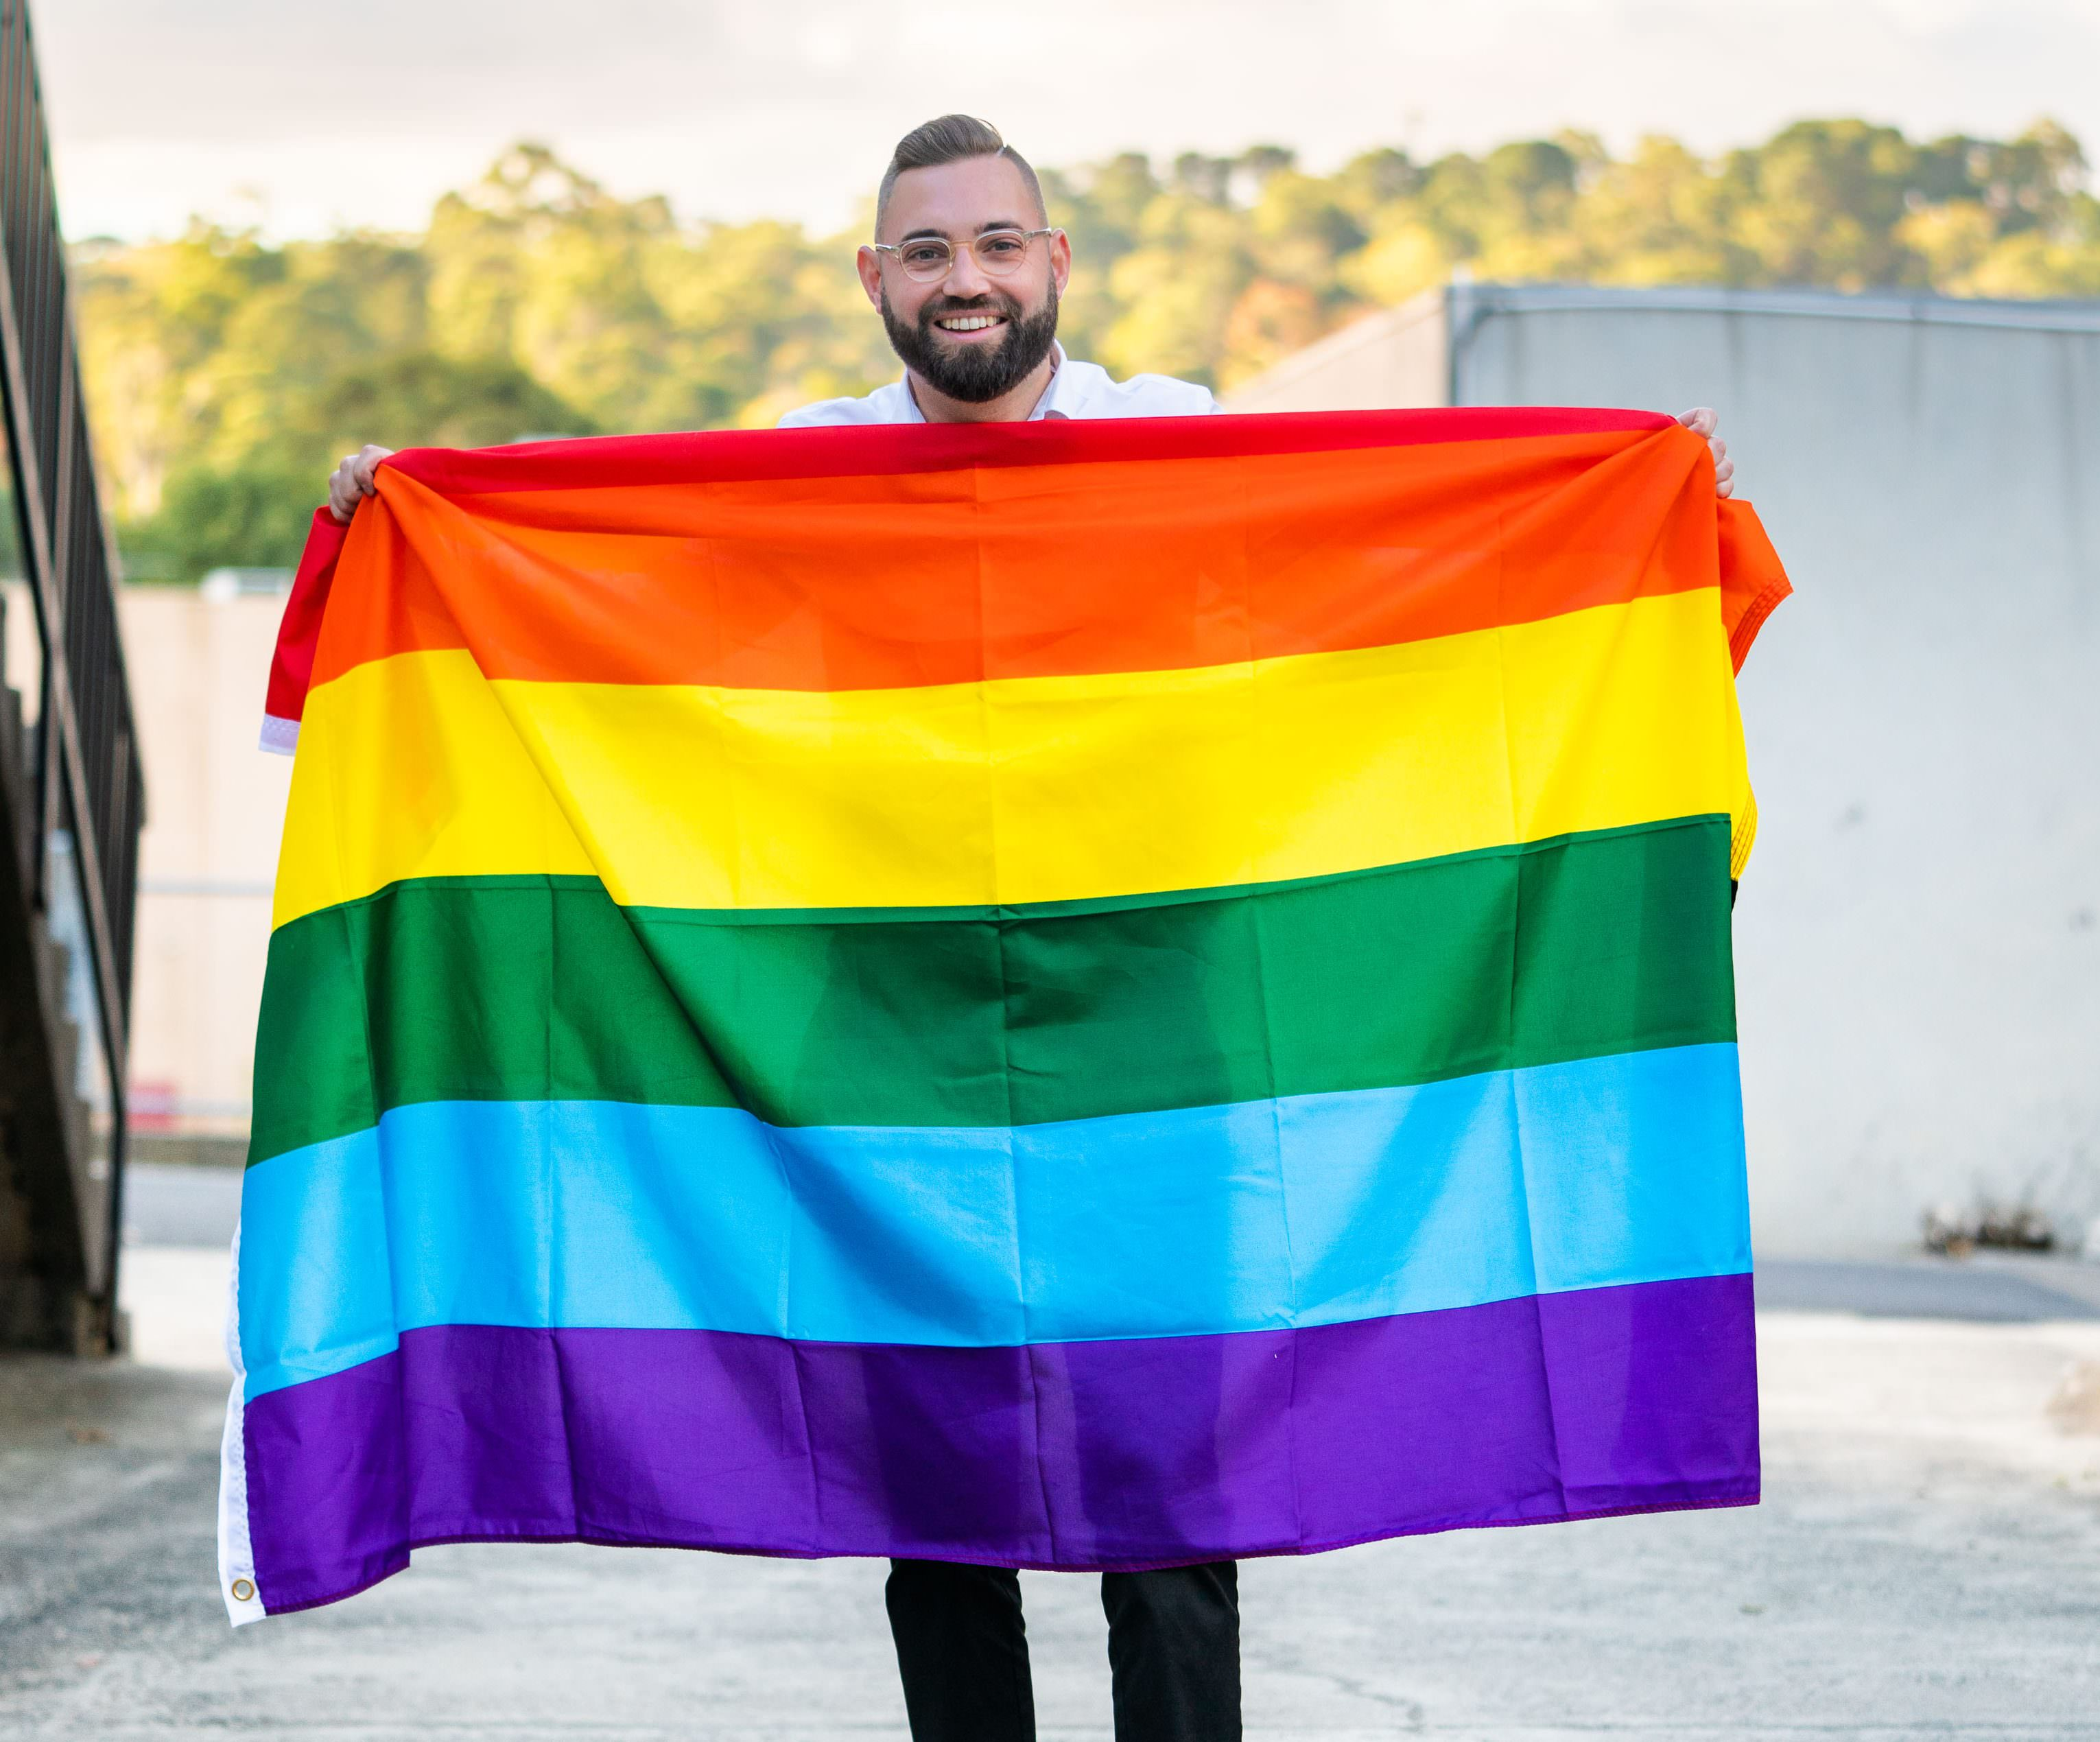 A photograph of Dustin Halse, the Member for Ringwood. He is proudly holding a Rainbow flag.